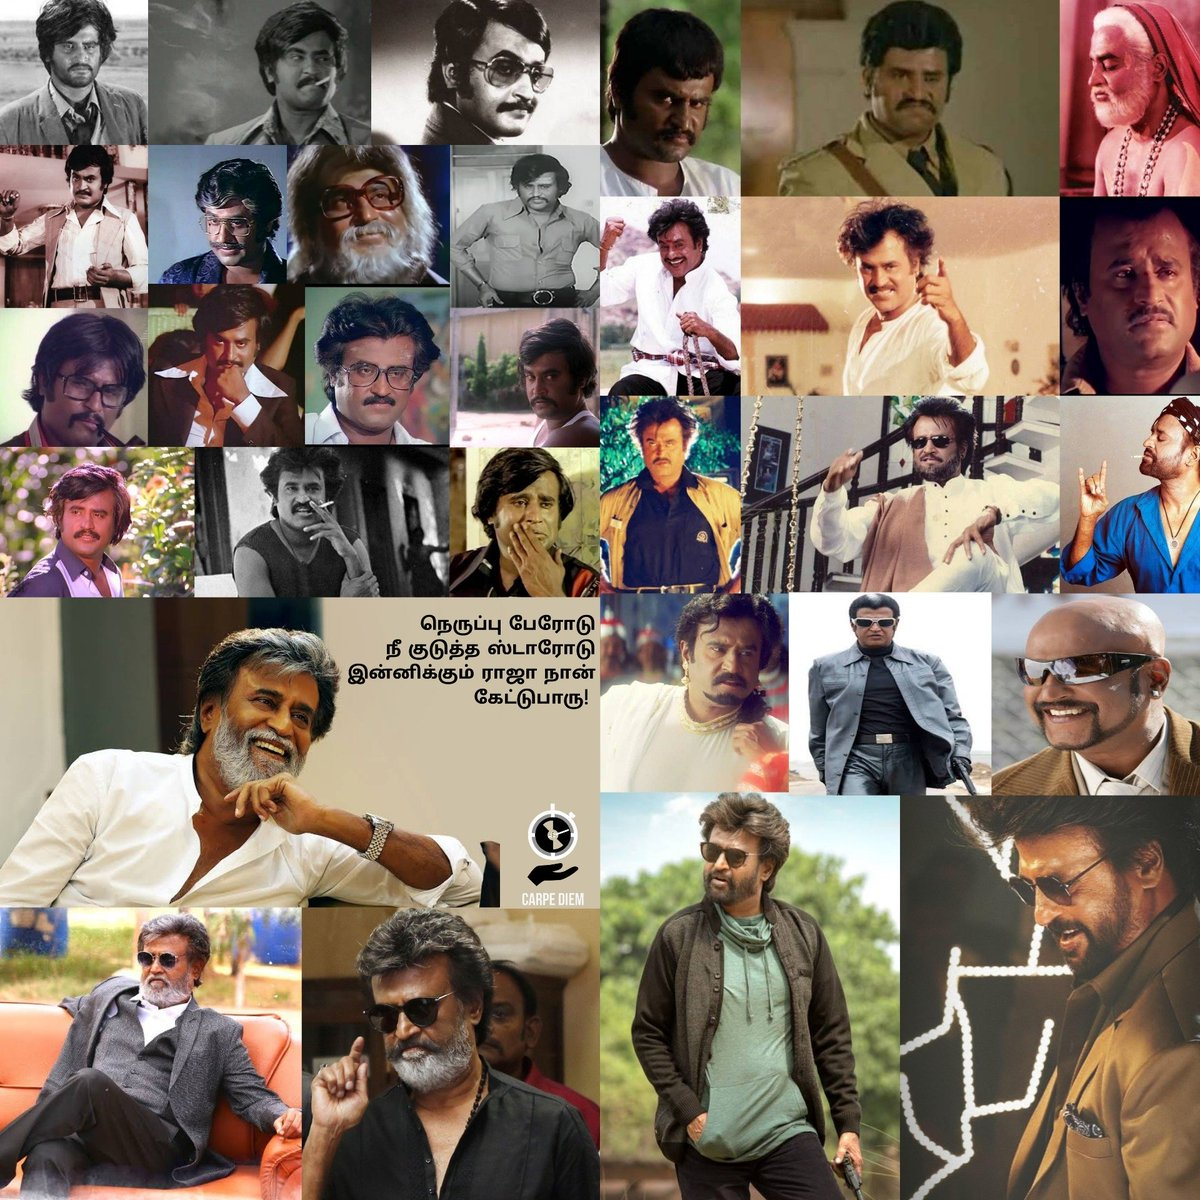 Shivaji Rao had to take up coolie and bus conductor job to survive while pursuing his love for acting.45 years later there is none who has a career as successful as #Rajinikanth he is a miracle himself and miracles always happen Arputham Adishayam Nadakum #HappyBirthdaySuperstar<br>http://pic.twitter.com/lEYcCsX5YV